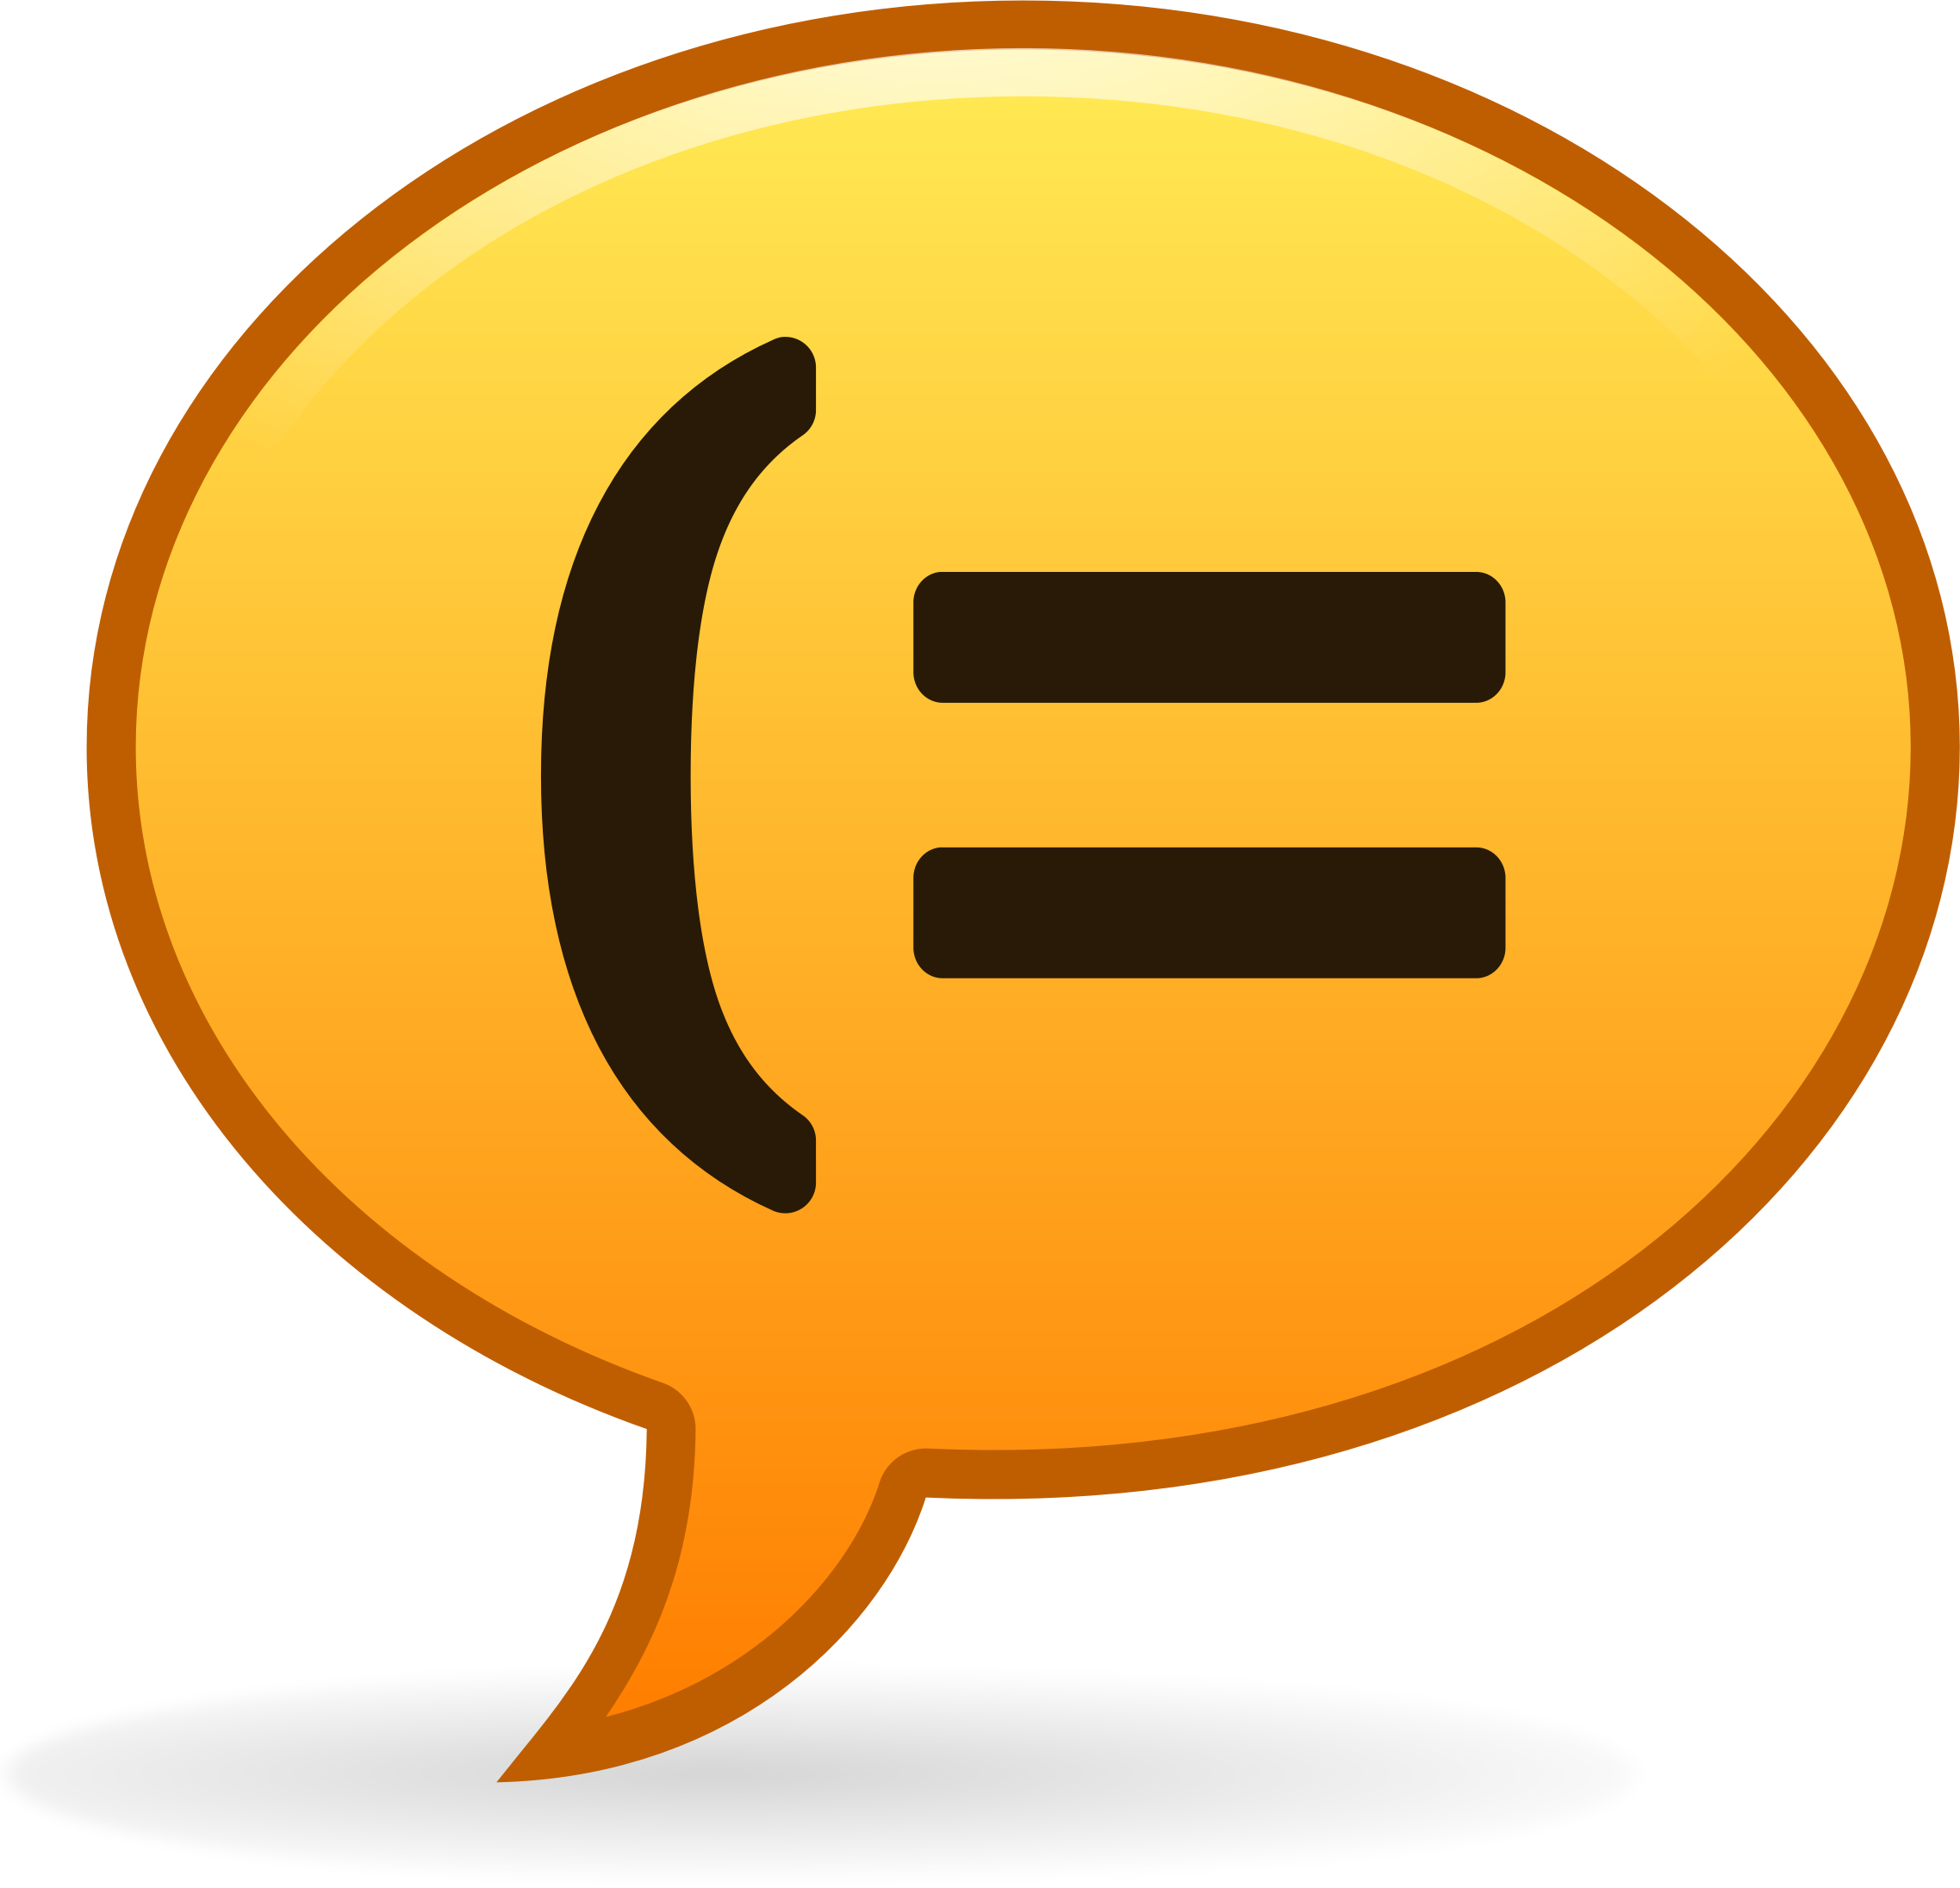 instant messenger by sixsixfive